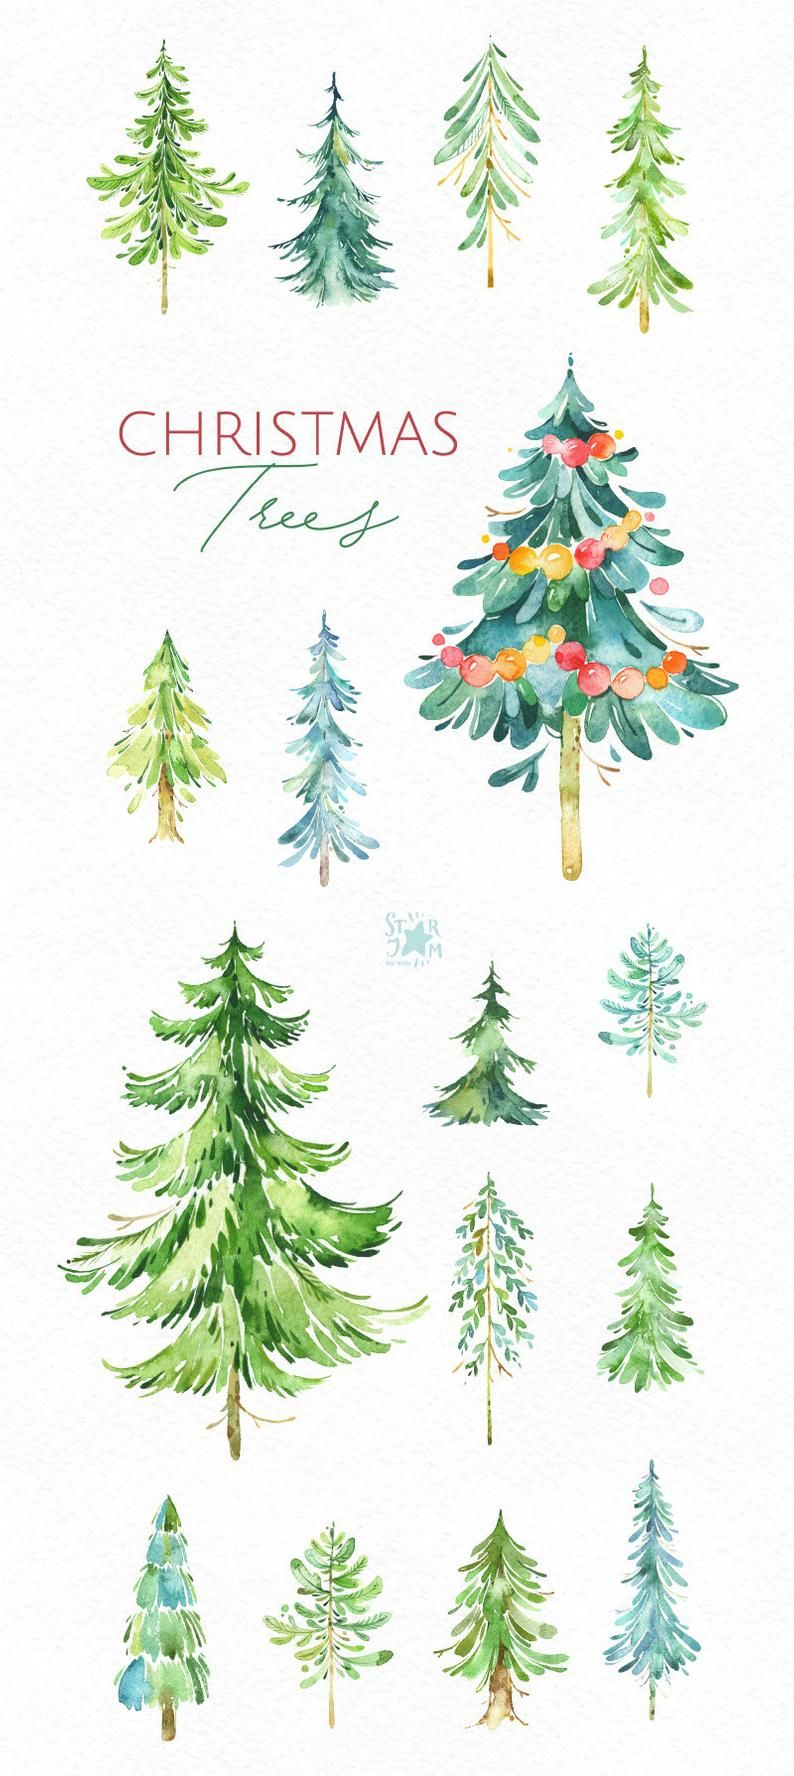 Christmas Trees 2 16 Watercolor Holiday Clipart Winter Etsy In 2020 Christmas Tree Drawing Watercolor Christmas Cards Christmas Tree Painting